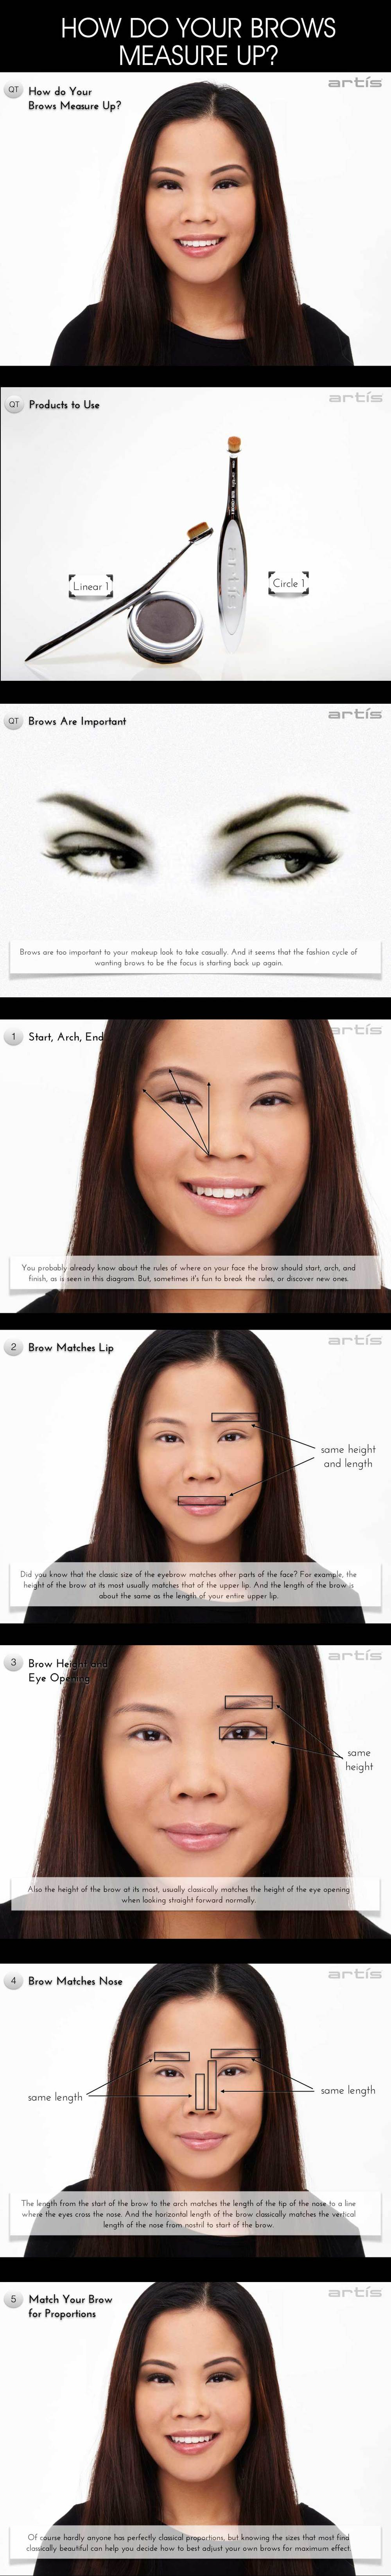 how-do-your-brows-measure-up-full-sequence.jpg